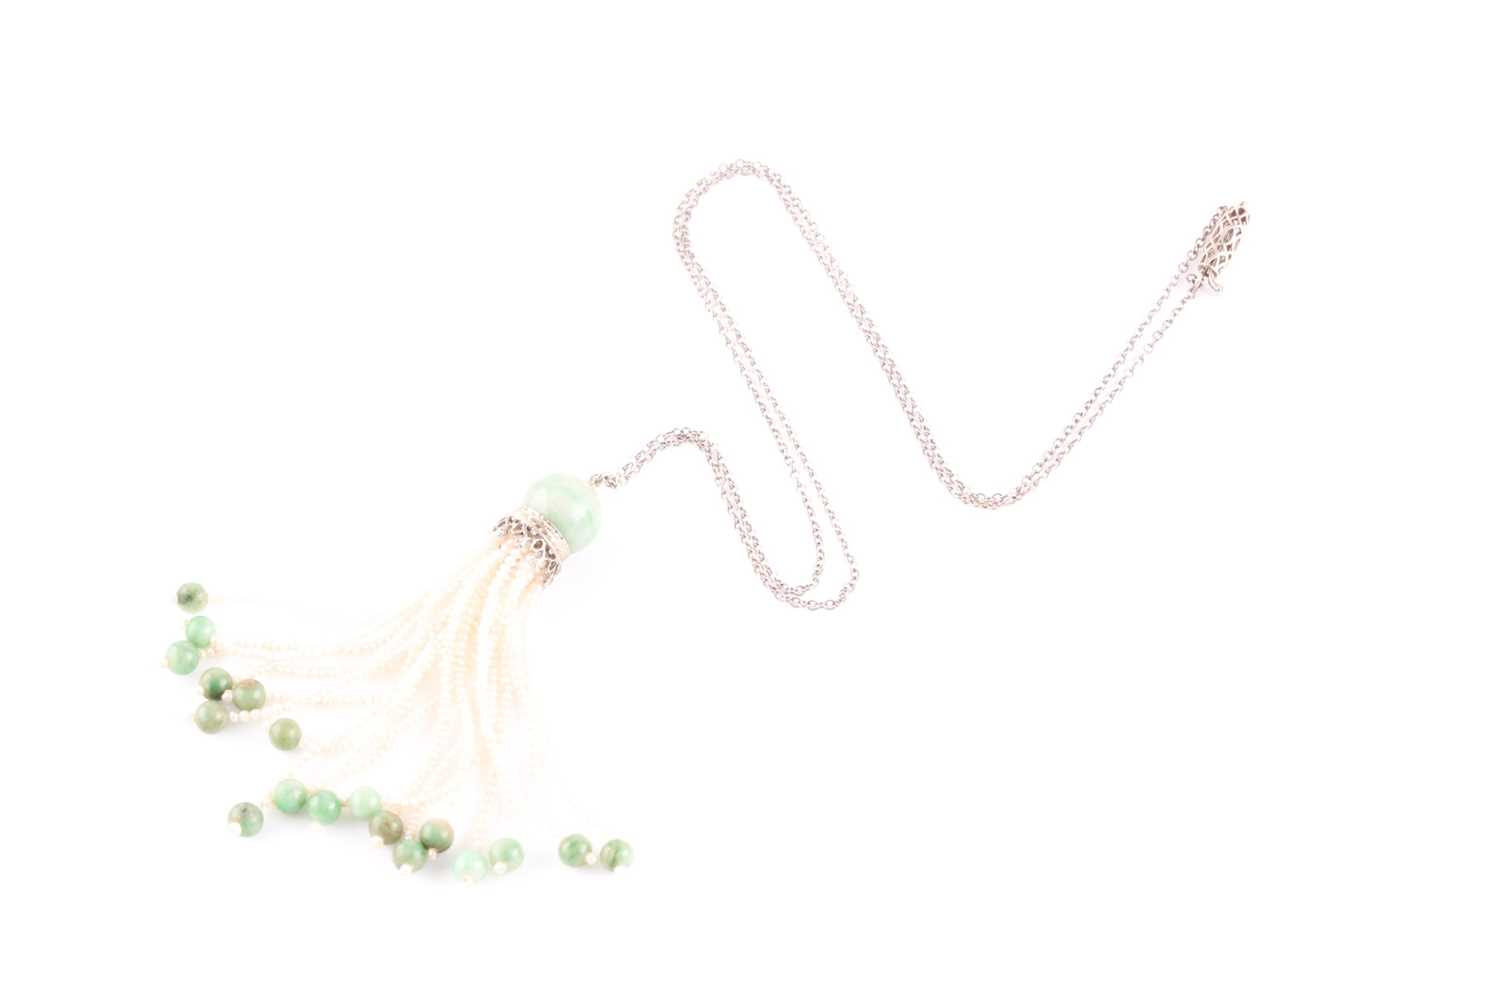 An Art Deco jade and seed pearl tassel pendant necklace, set with a rounded jade bead suspended with - Image 2 of 3